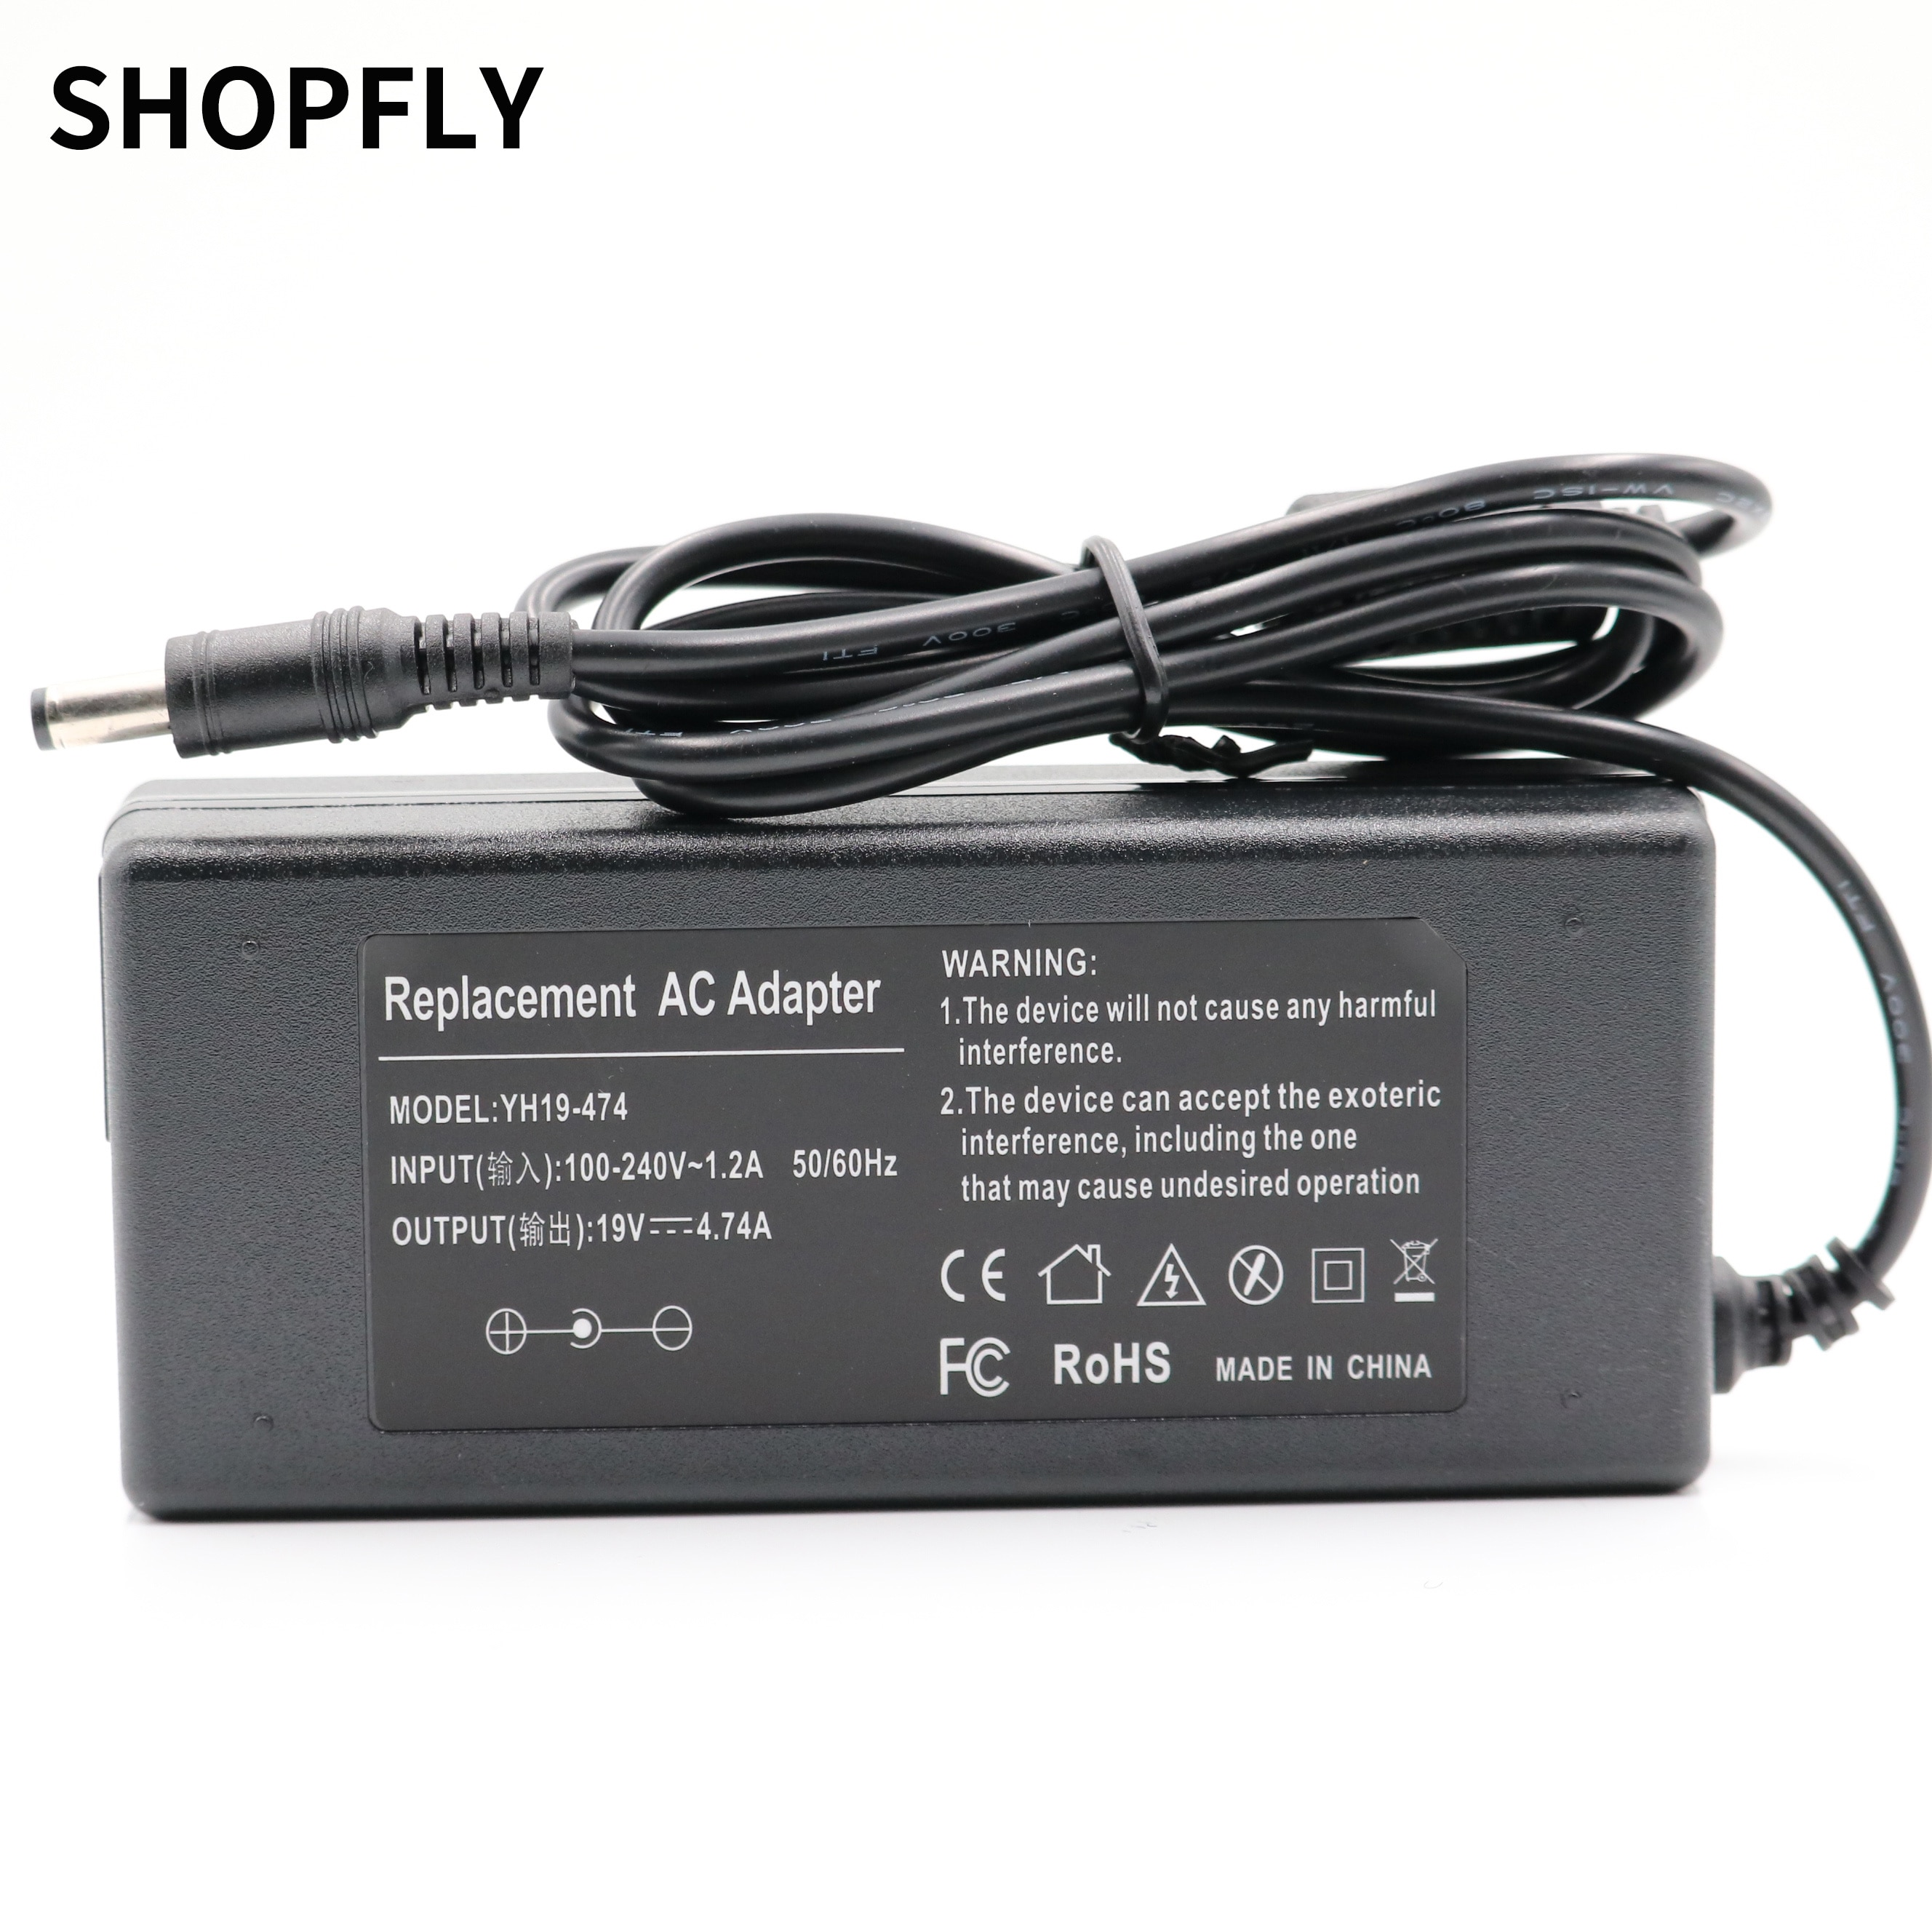 ASUS 5.5*2.5mm AC Laptop Power Adapter Travel Charger For Asus 19V 4.74A 90W ADP-90YD NoteBook 19V4.74A asus ac laptop power adapter travel charger for asus 2 5 0 7mm 19v 2 1a 40w adp 40ph ab power supply charger